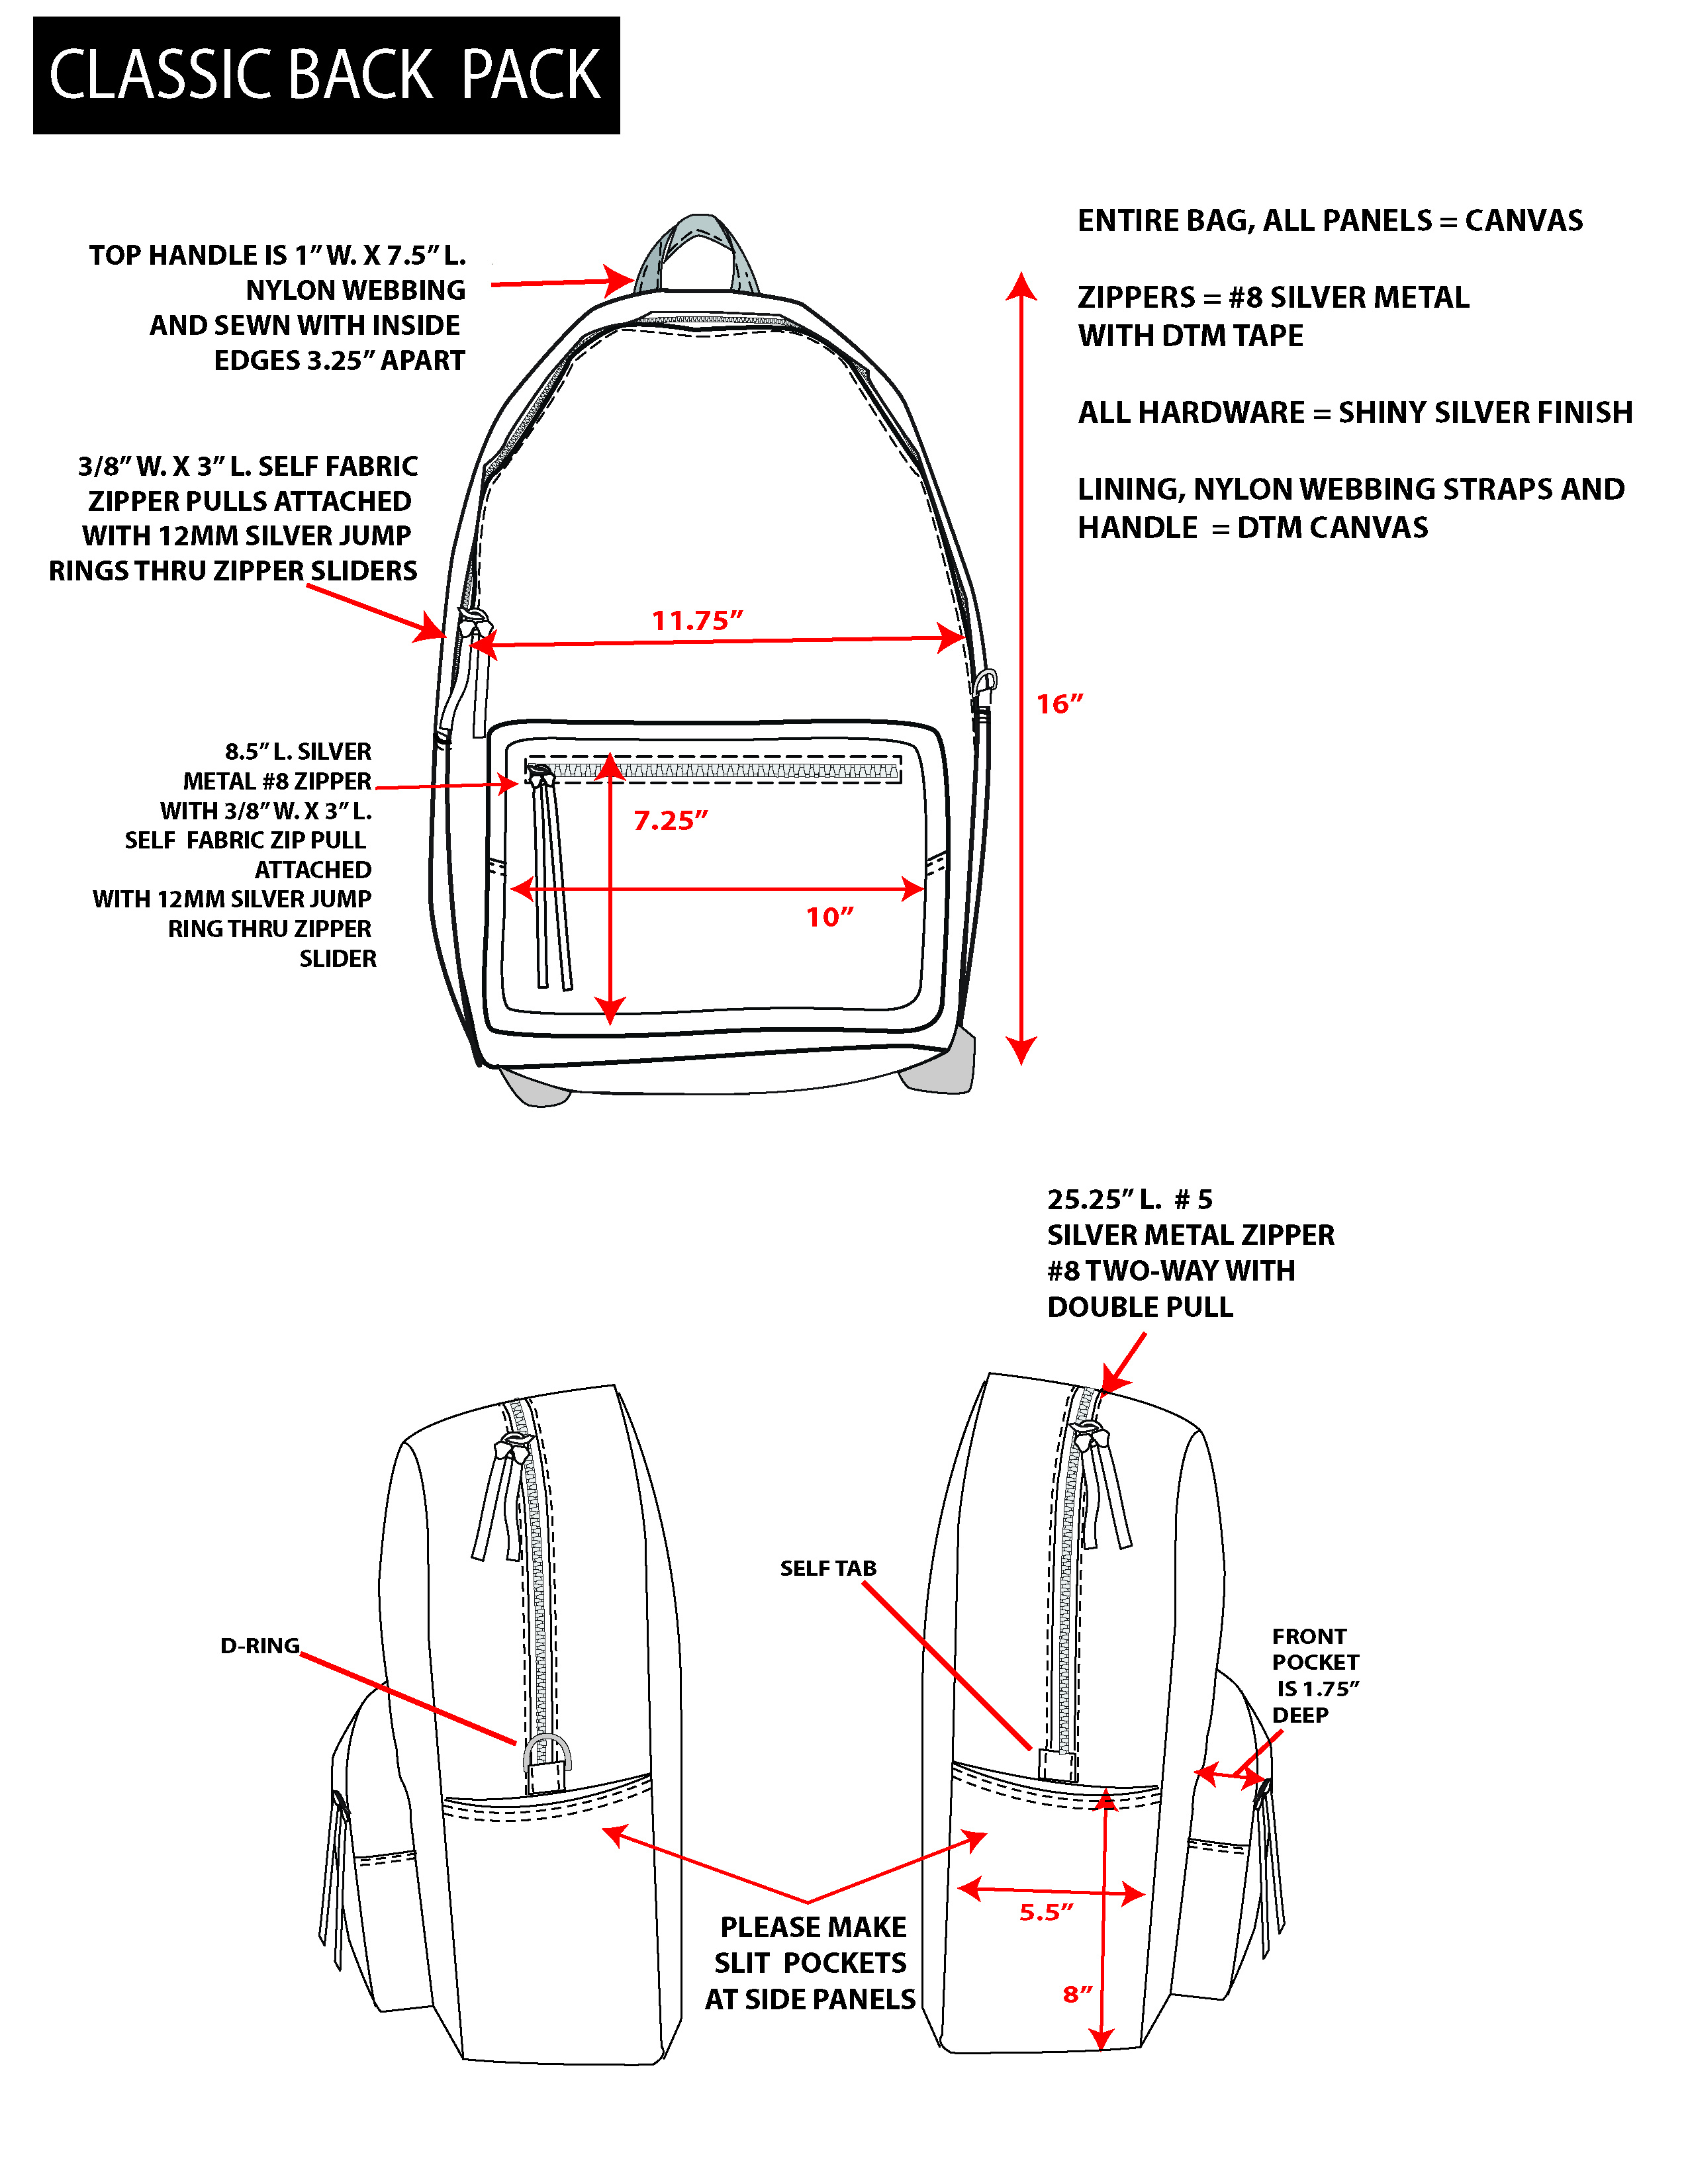 Back Pack Technical Sketch